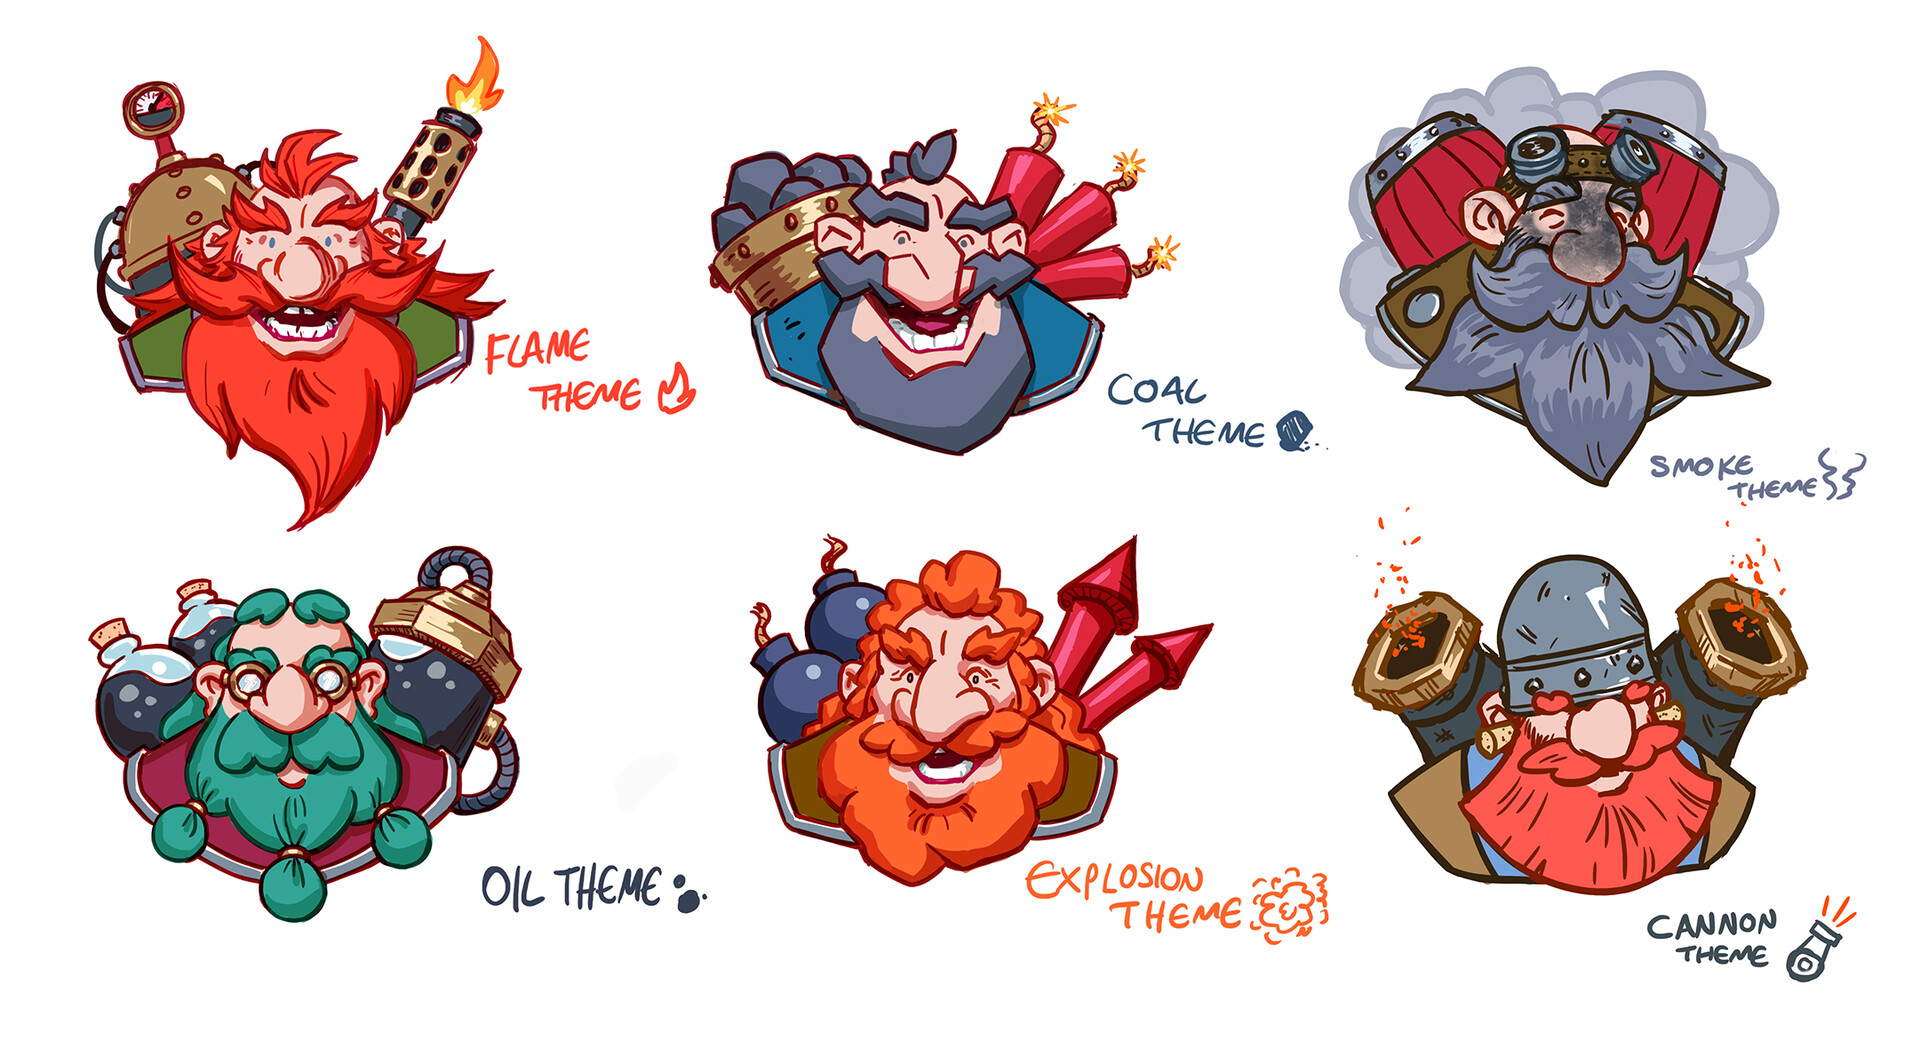 Some early designs for the dwarves, trying to give each a different theme.